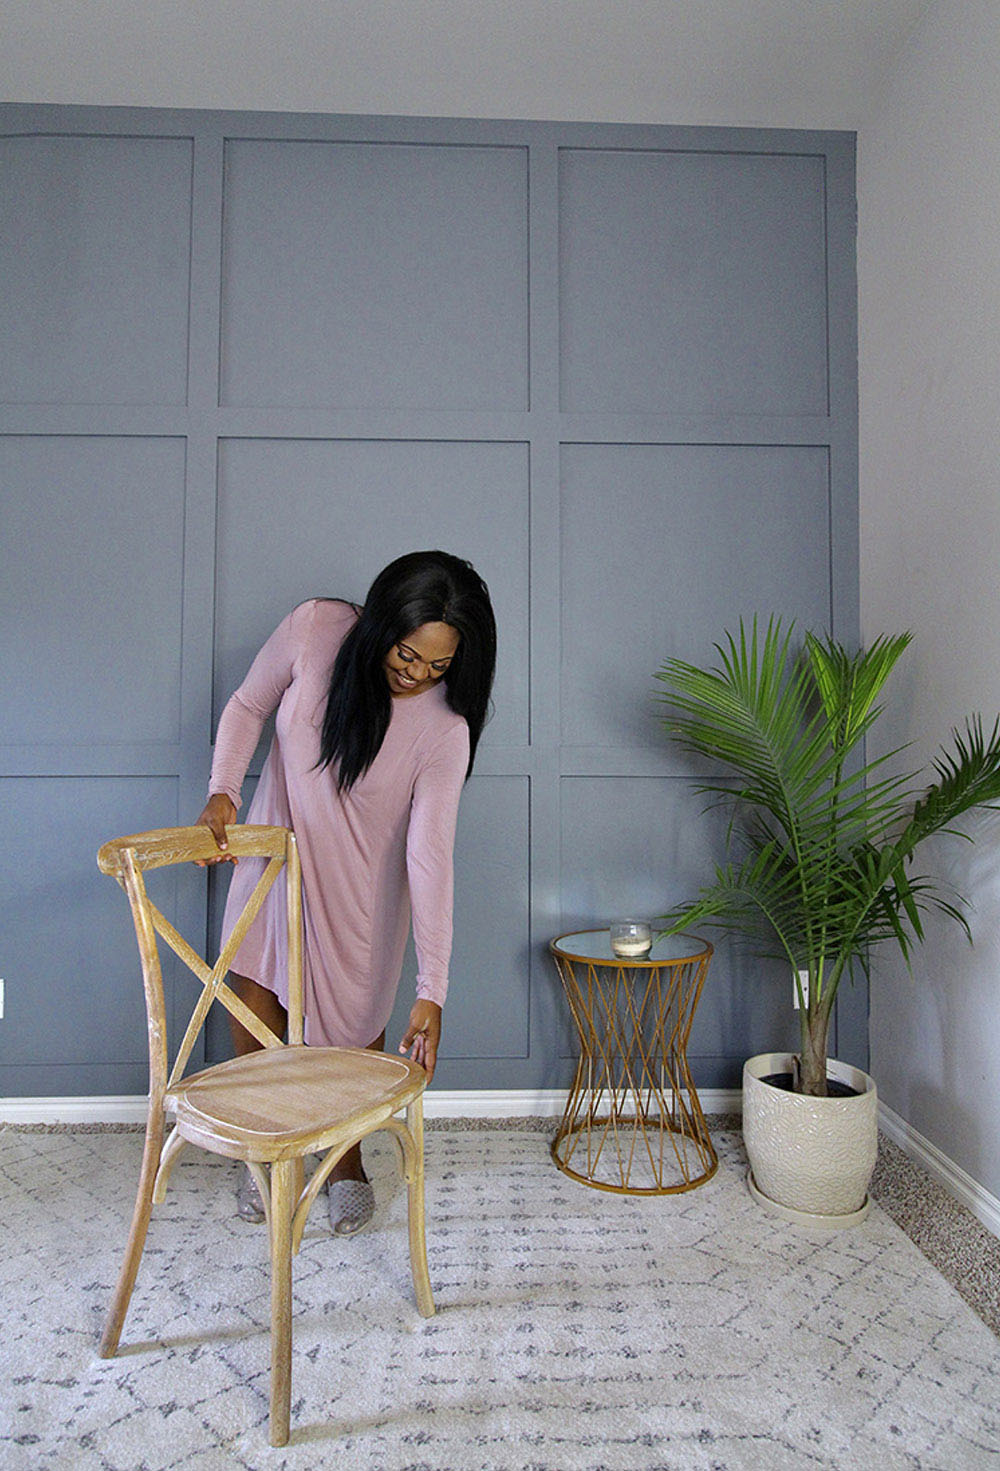 A woman moves a chair on a rug.